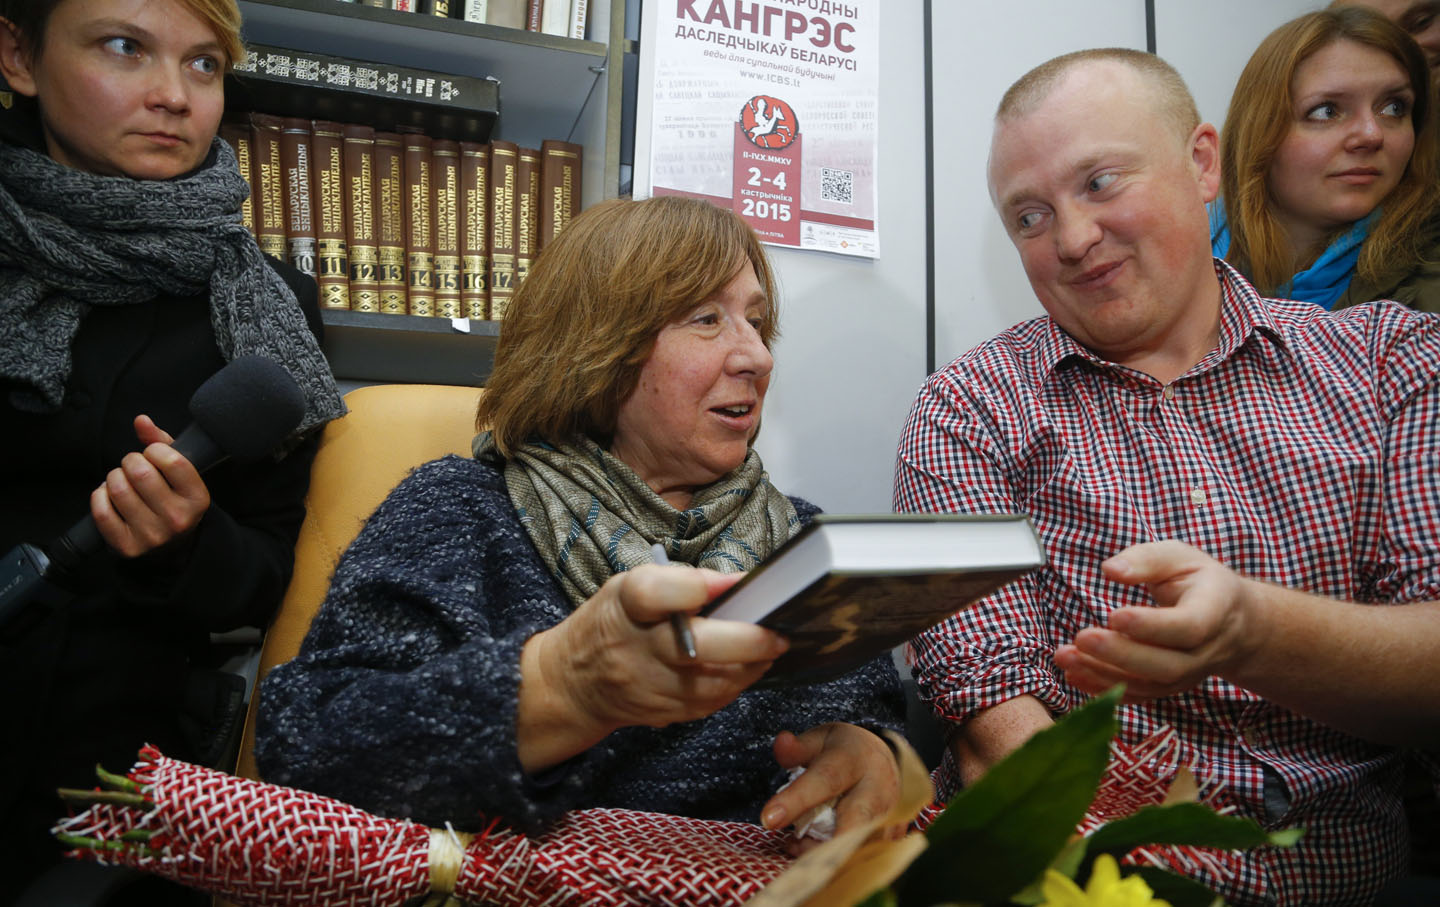 2015 Nobel Prize in Literature winner Svetlana Alexievich.